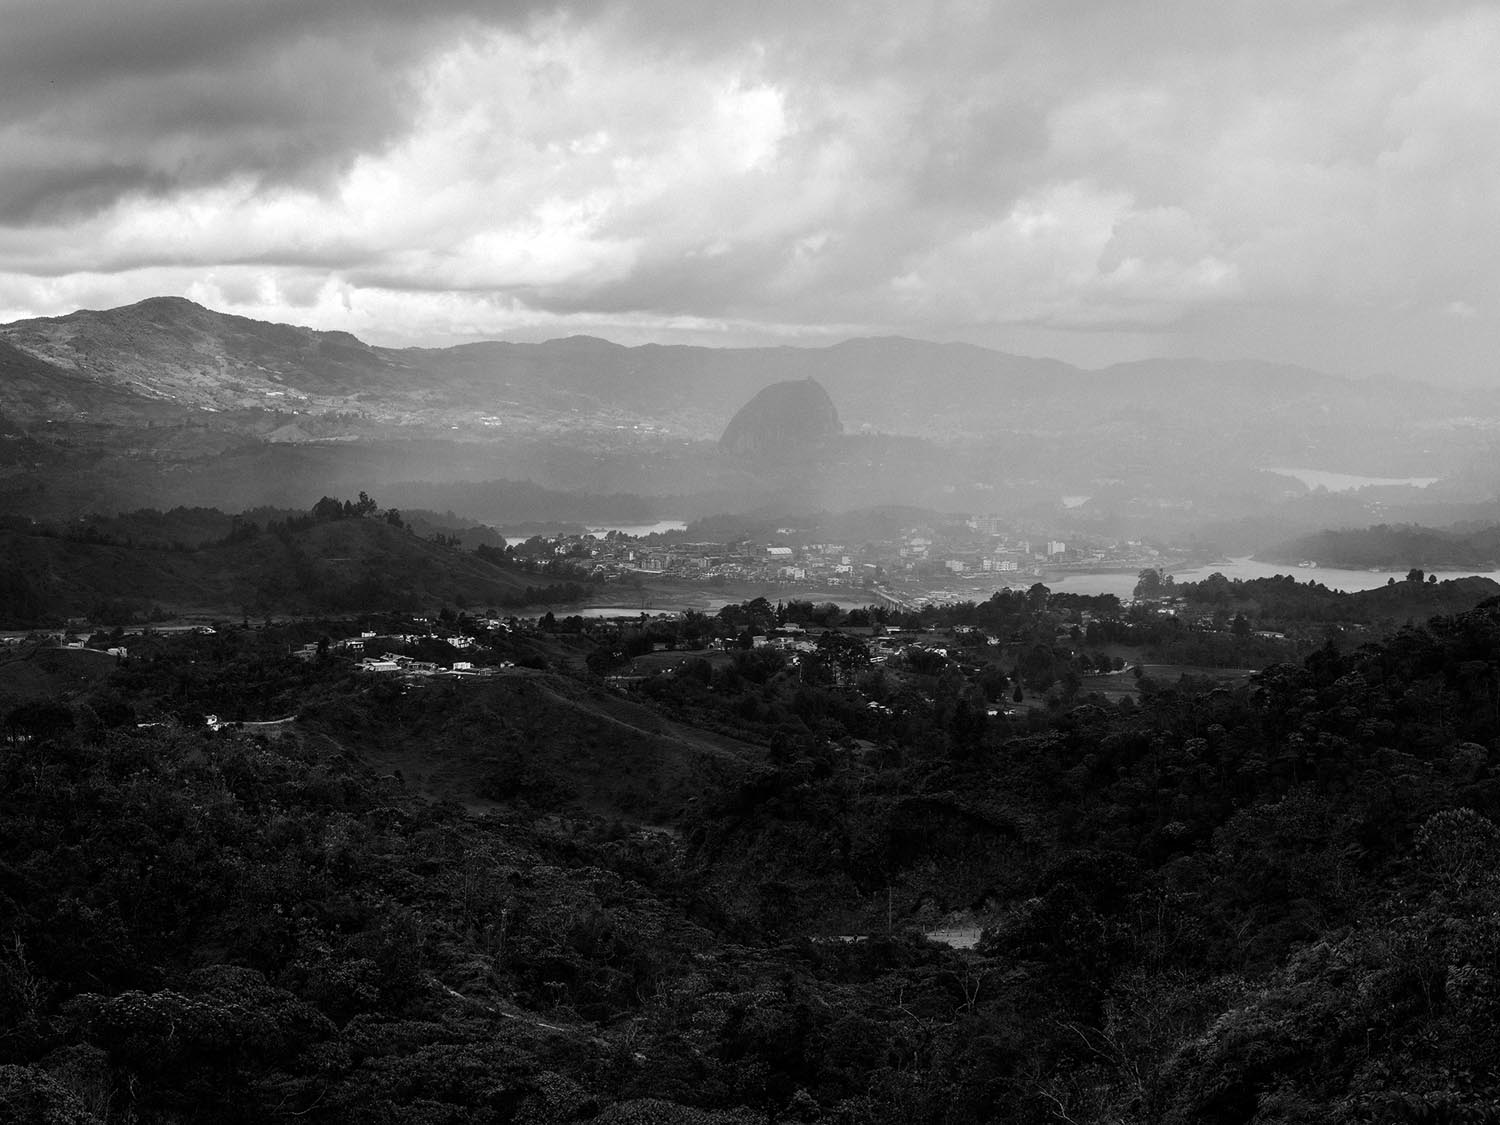 View at the end of the hike overlooking Guatapé. The Piedra del Peñol in the distance.